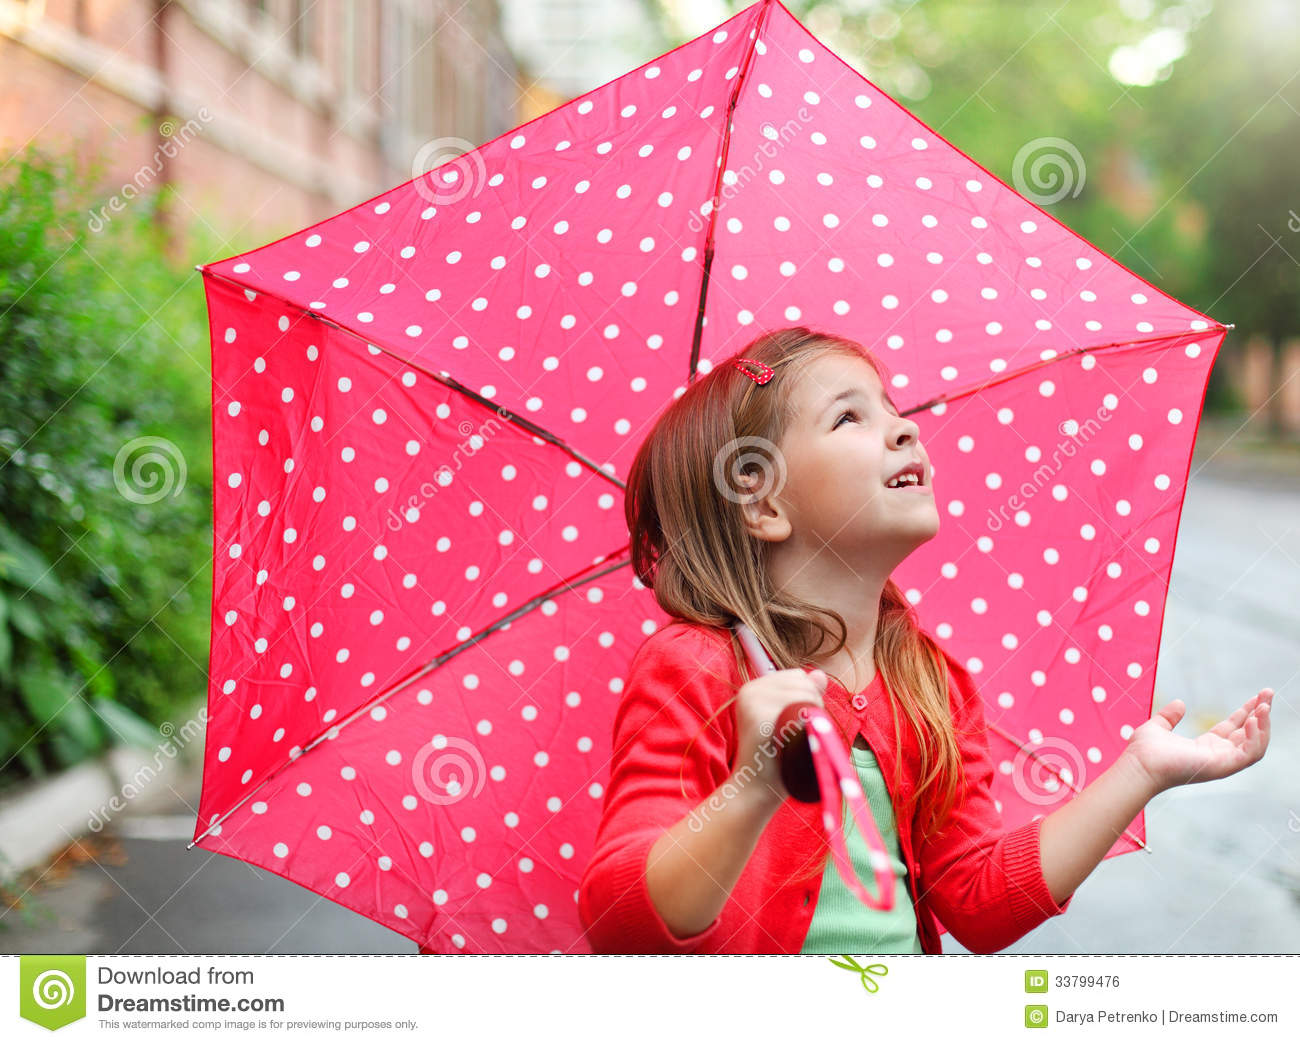 Red Rain Boots Clipart Little Girl With Polka...